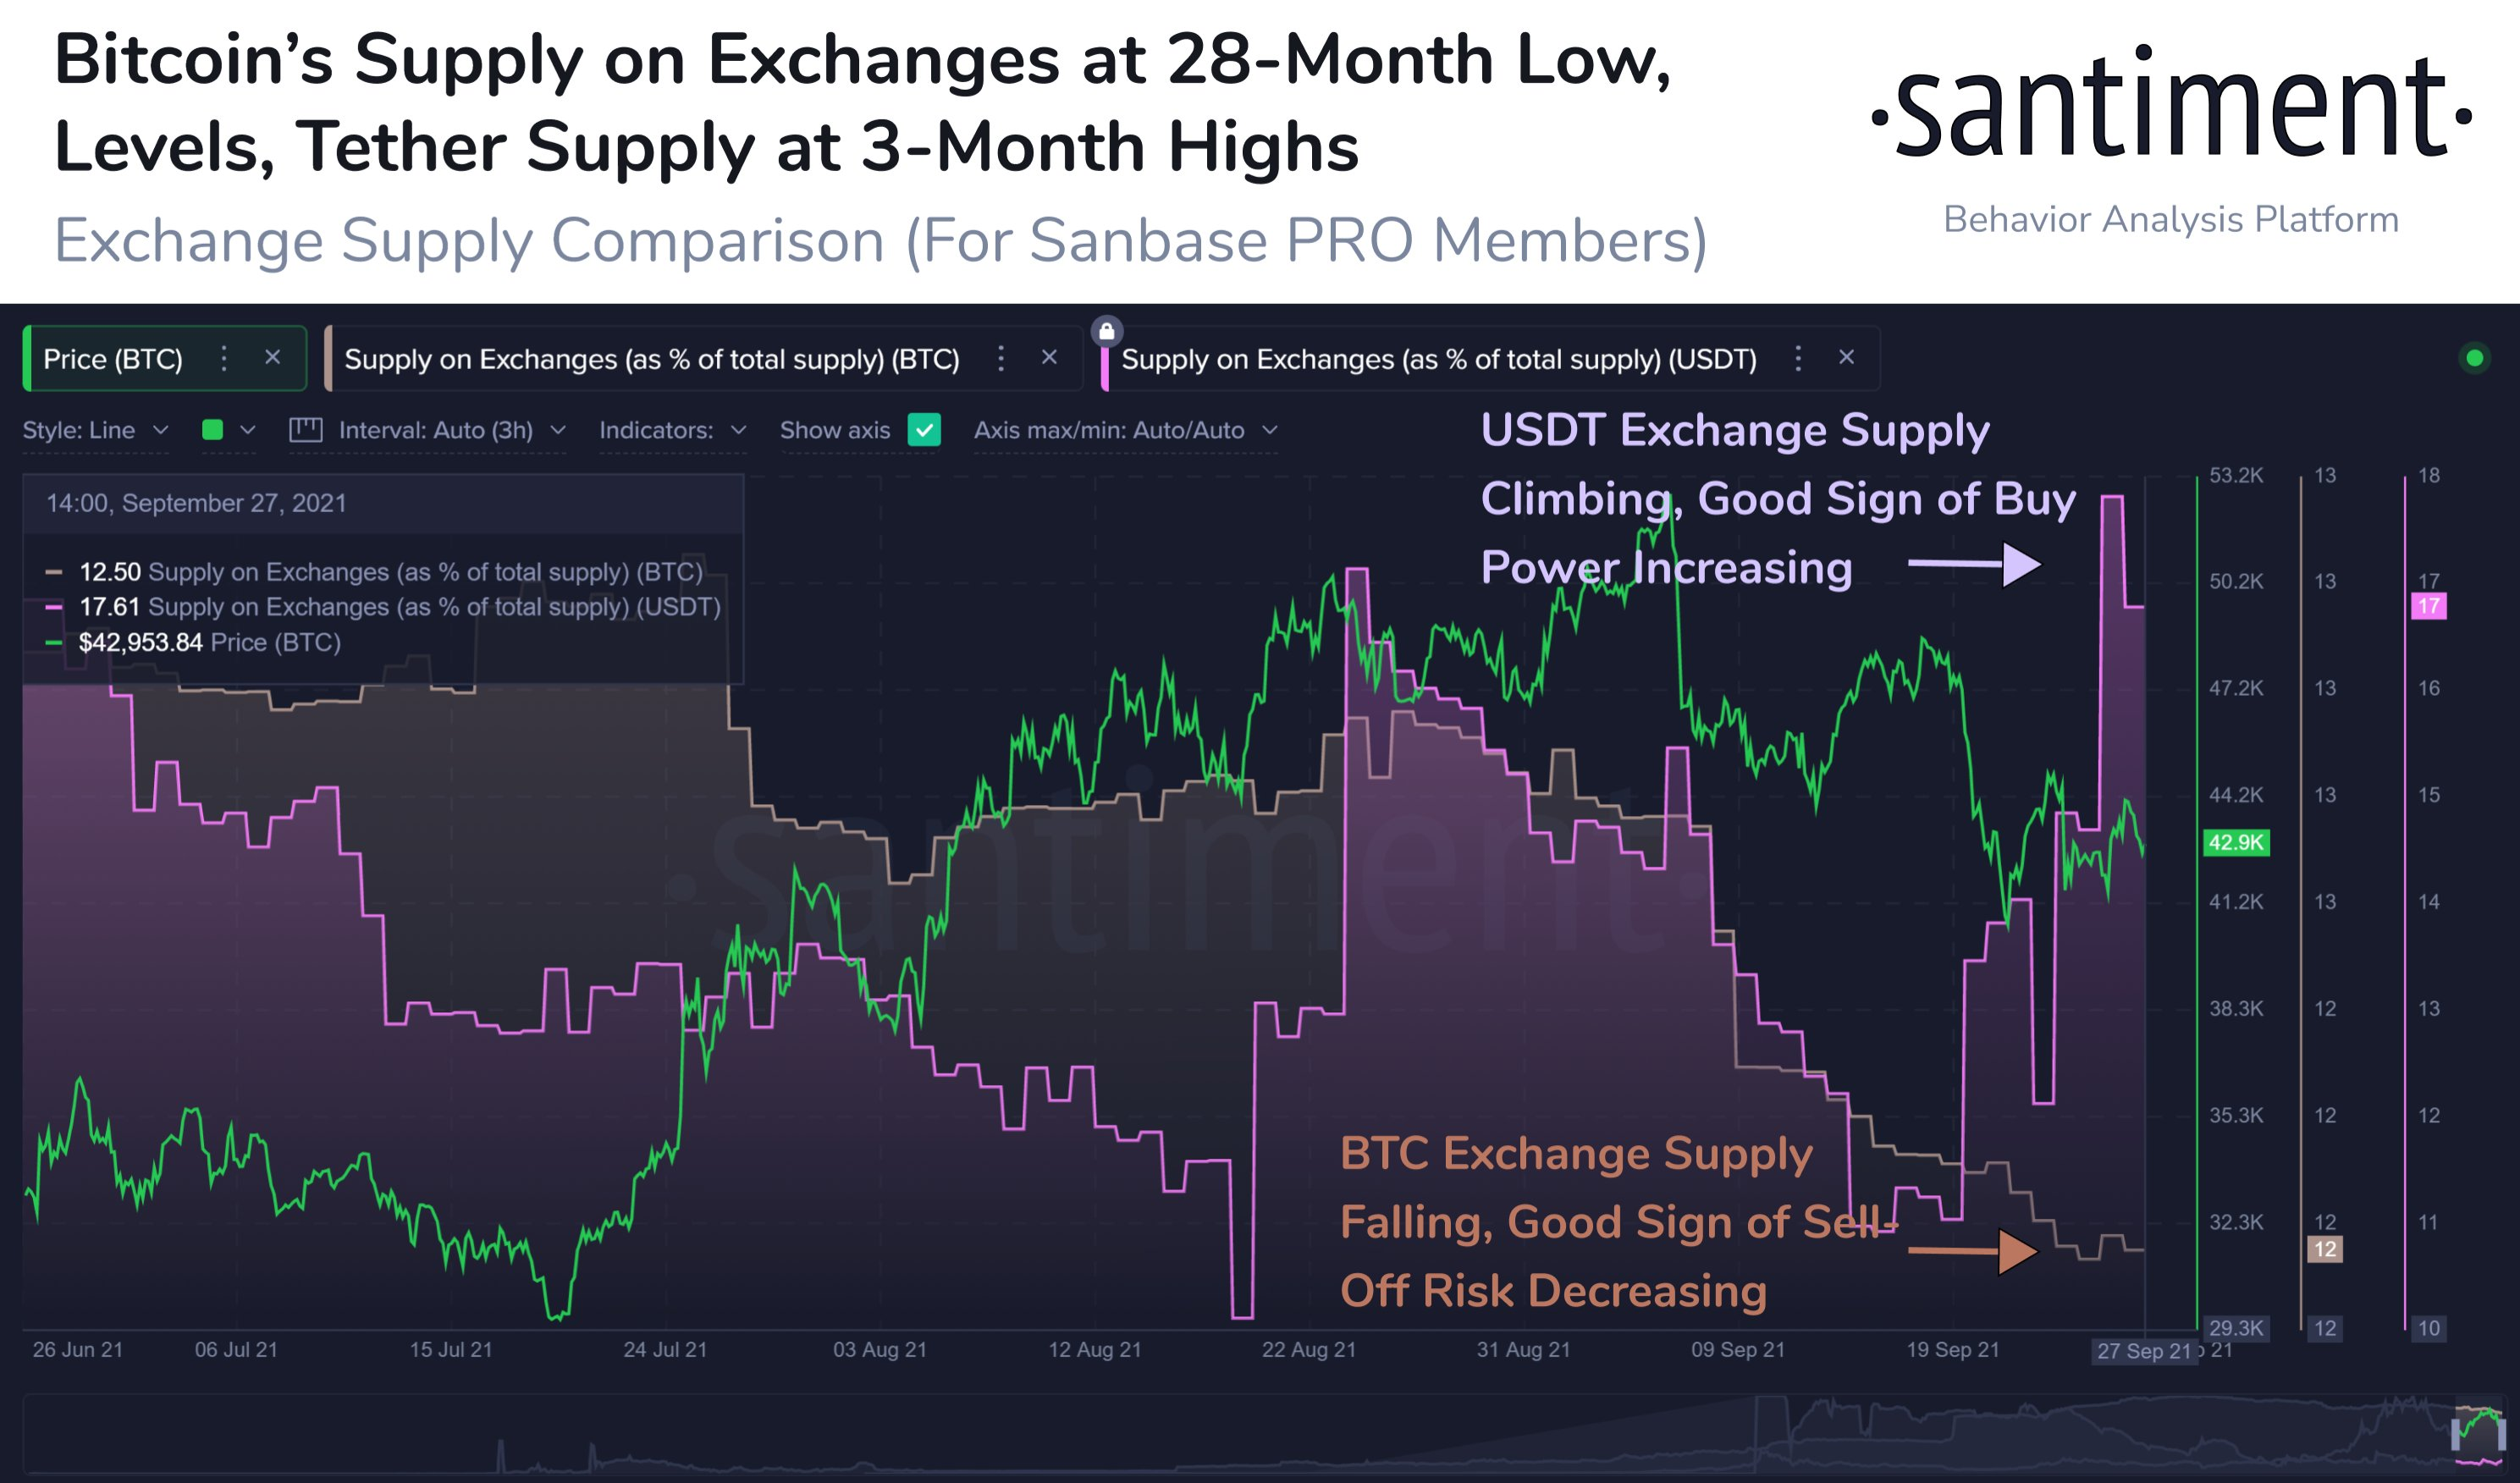 BTC supply on exchanges is now the lowest since May 2019